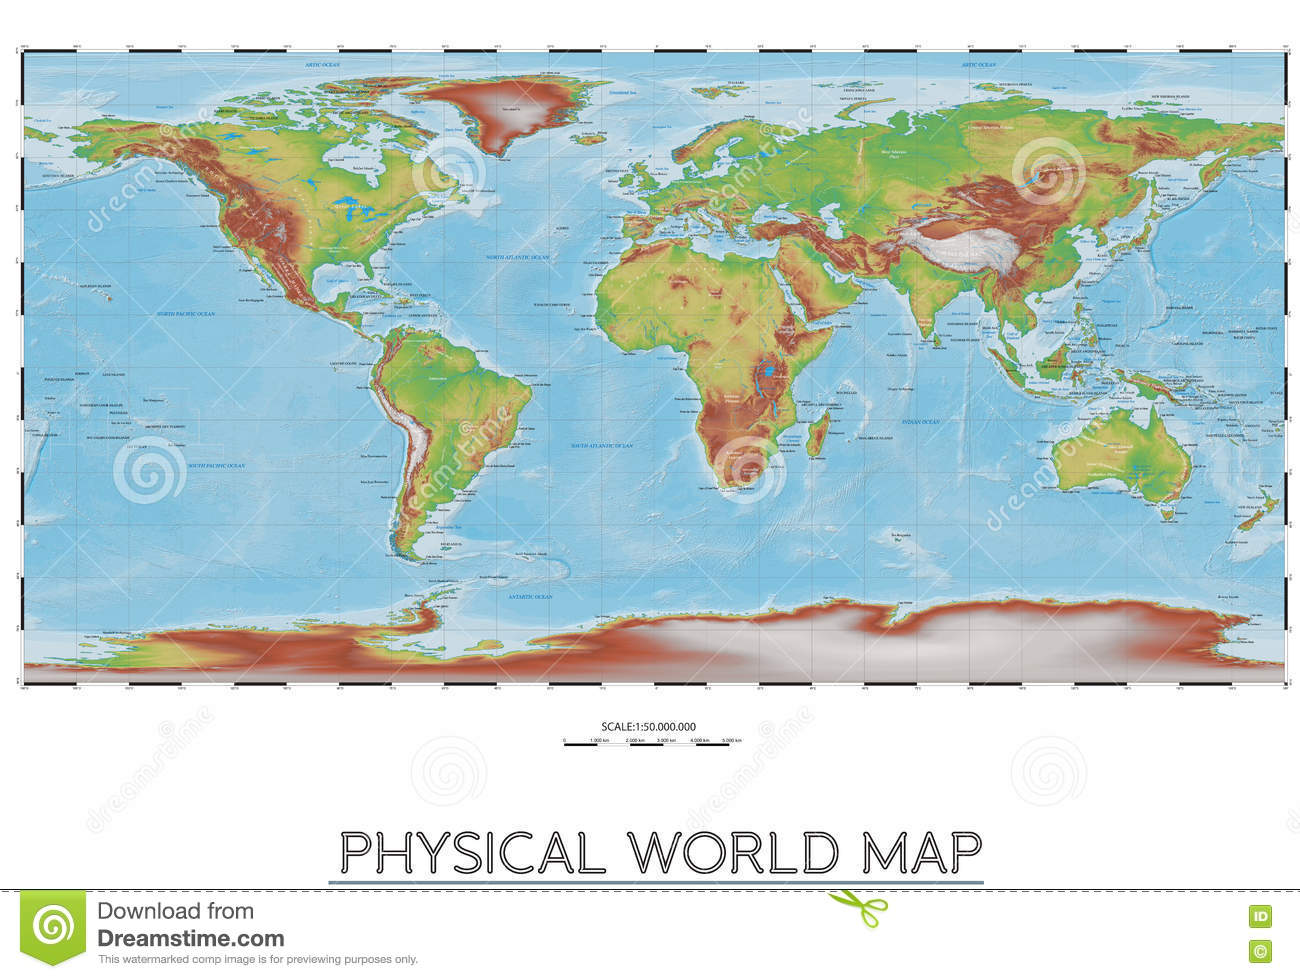 Physical world map stock vector illustration of physical 80856817 physical world map royalty free vector download gumiabroncs Gallery